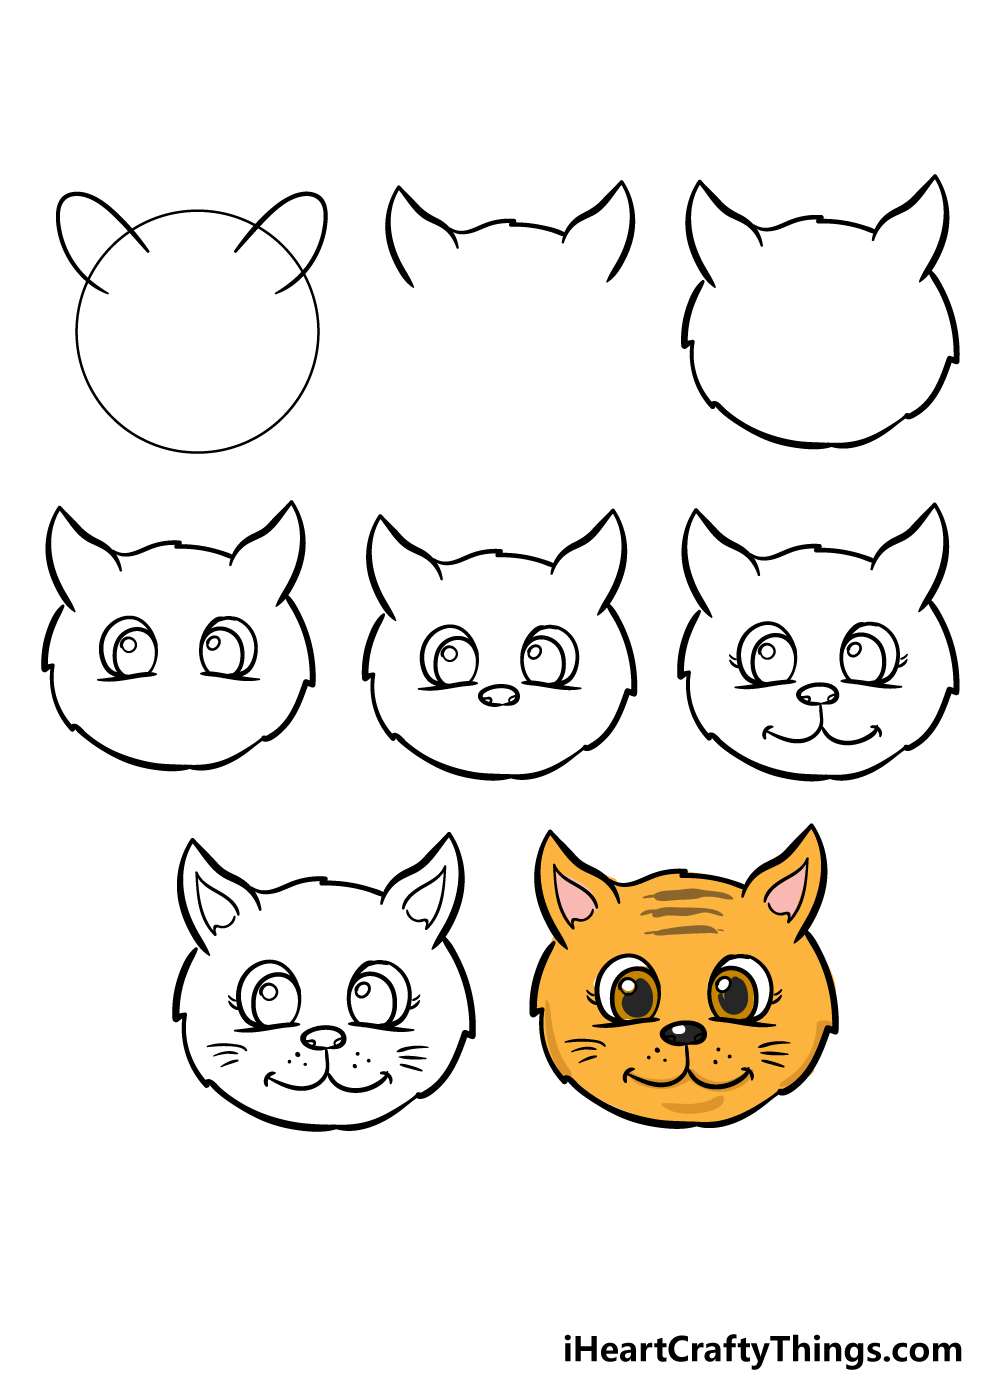 how to draw cat face in 8 steps